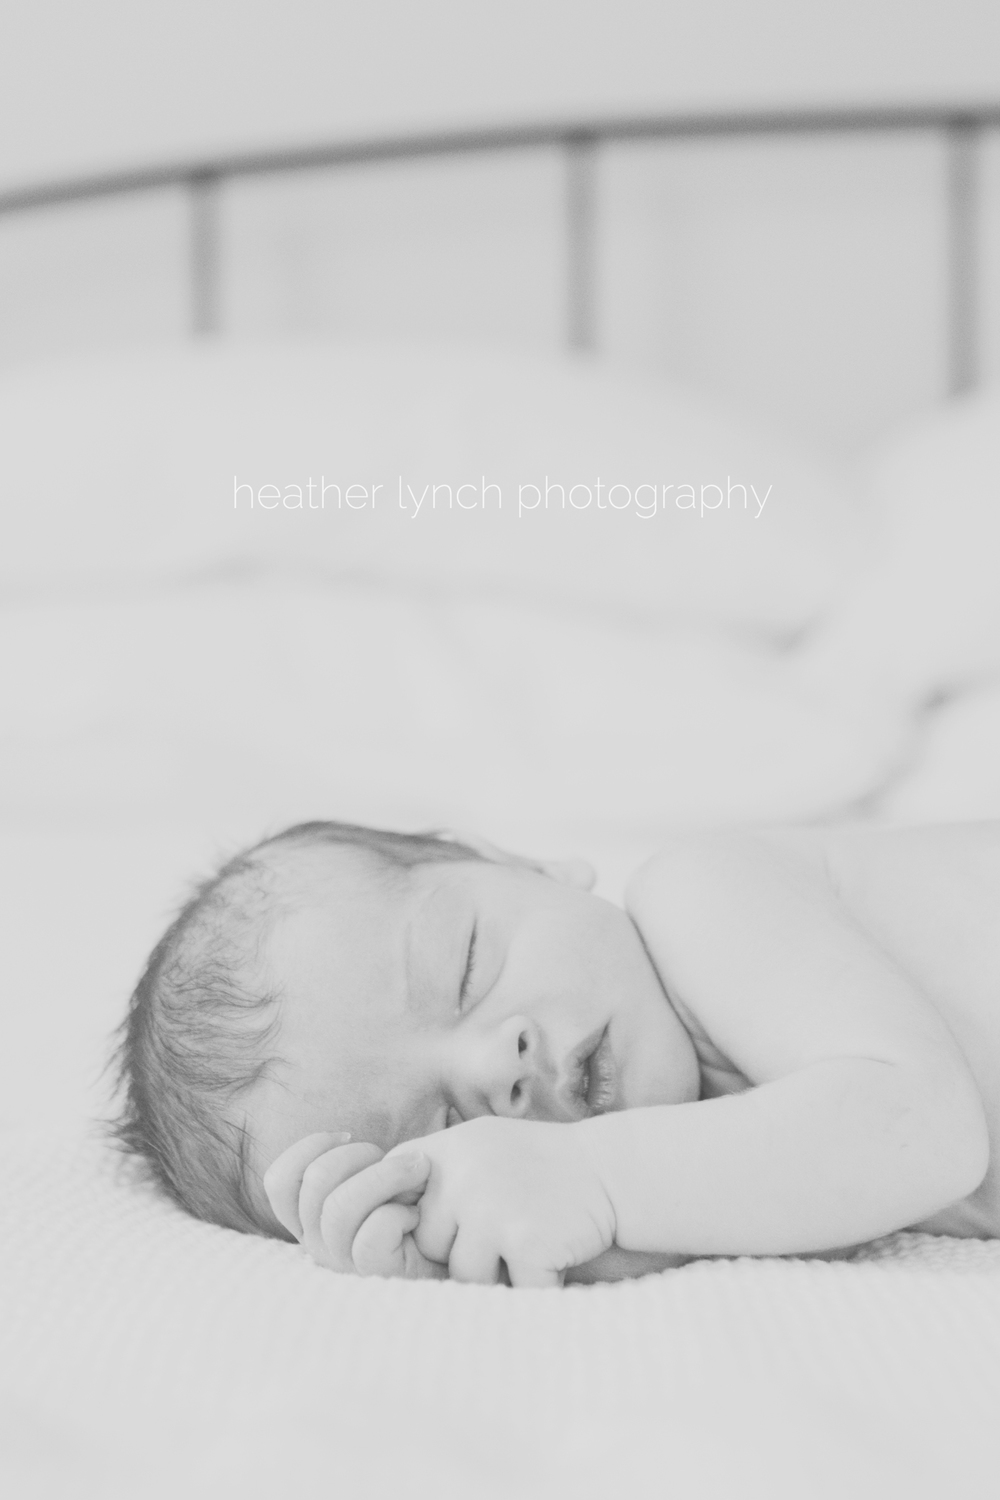 London Ontario newborn photographer, London Ontario newborn photography, natural light newborn photography, heather lynch photography,